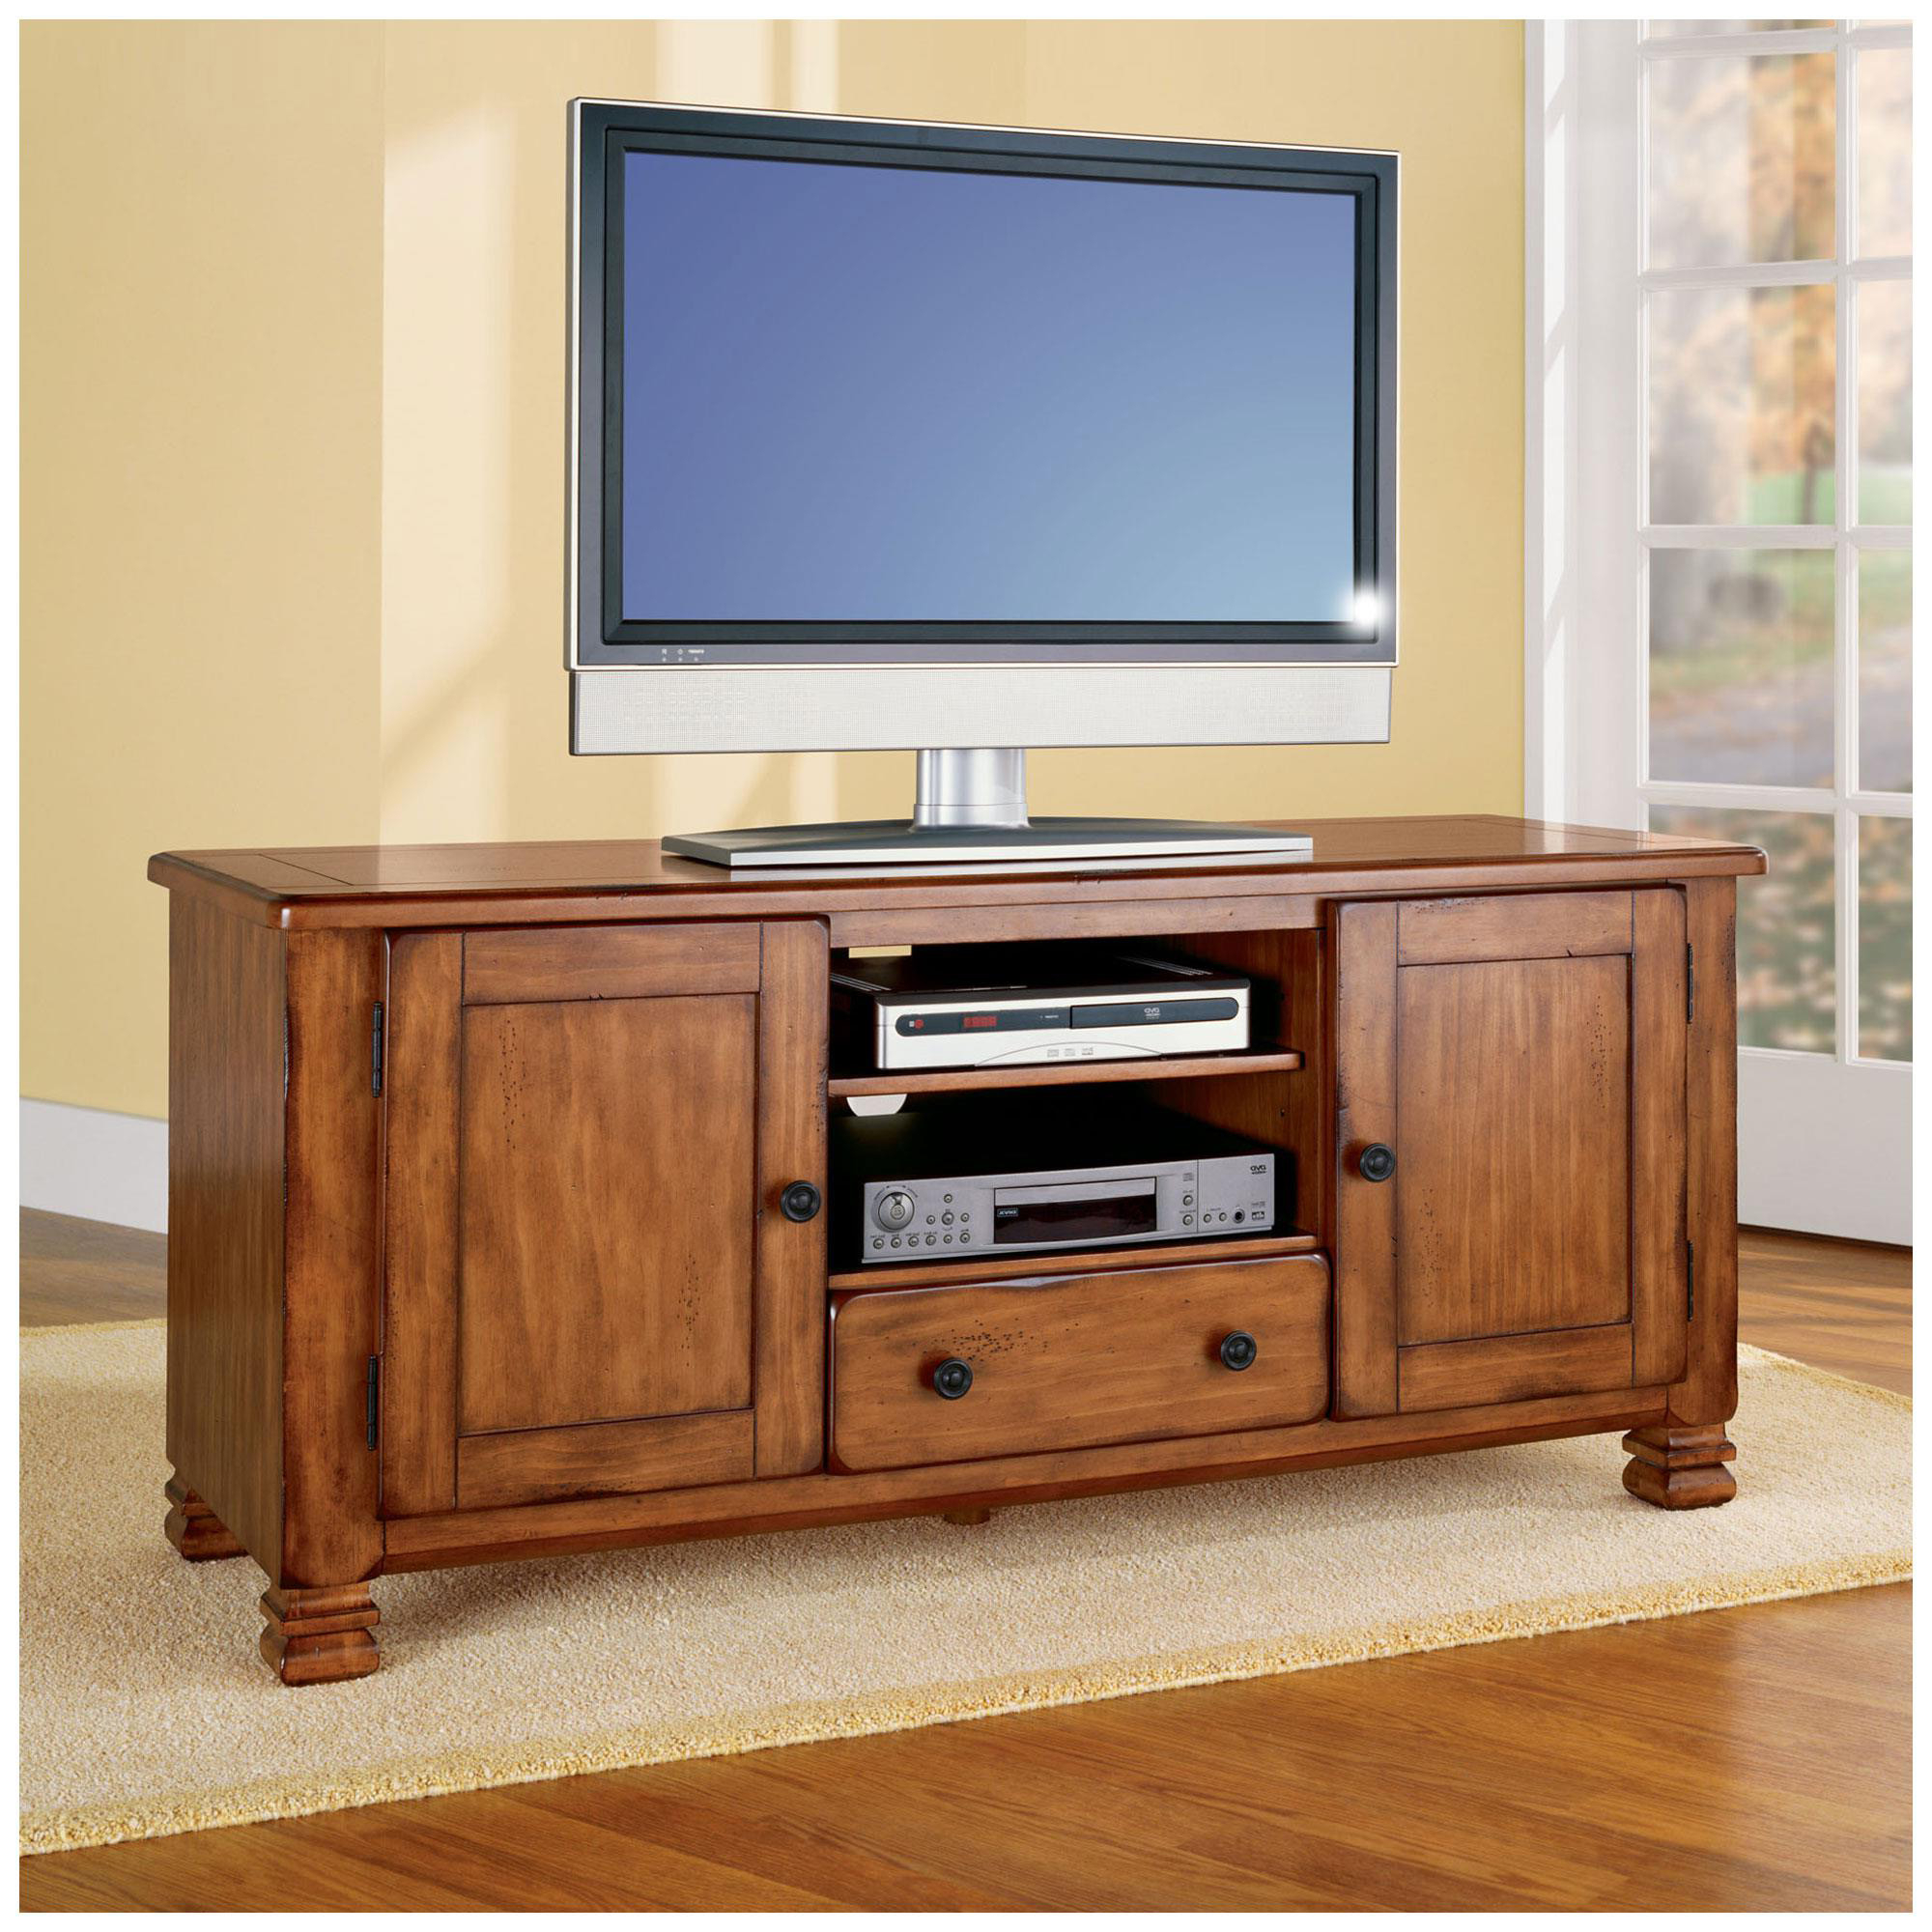 2017 Amish Corner Tv Stand Solid Wood Console Mission Style Stands For For Solid Wood Corner Tv Cabinets (View 17 of 20)